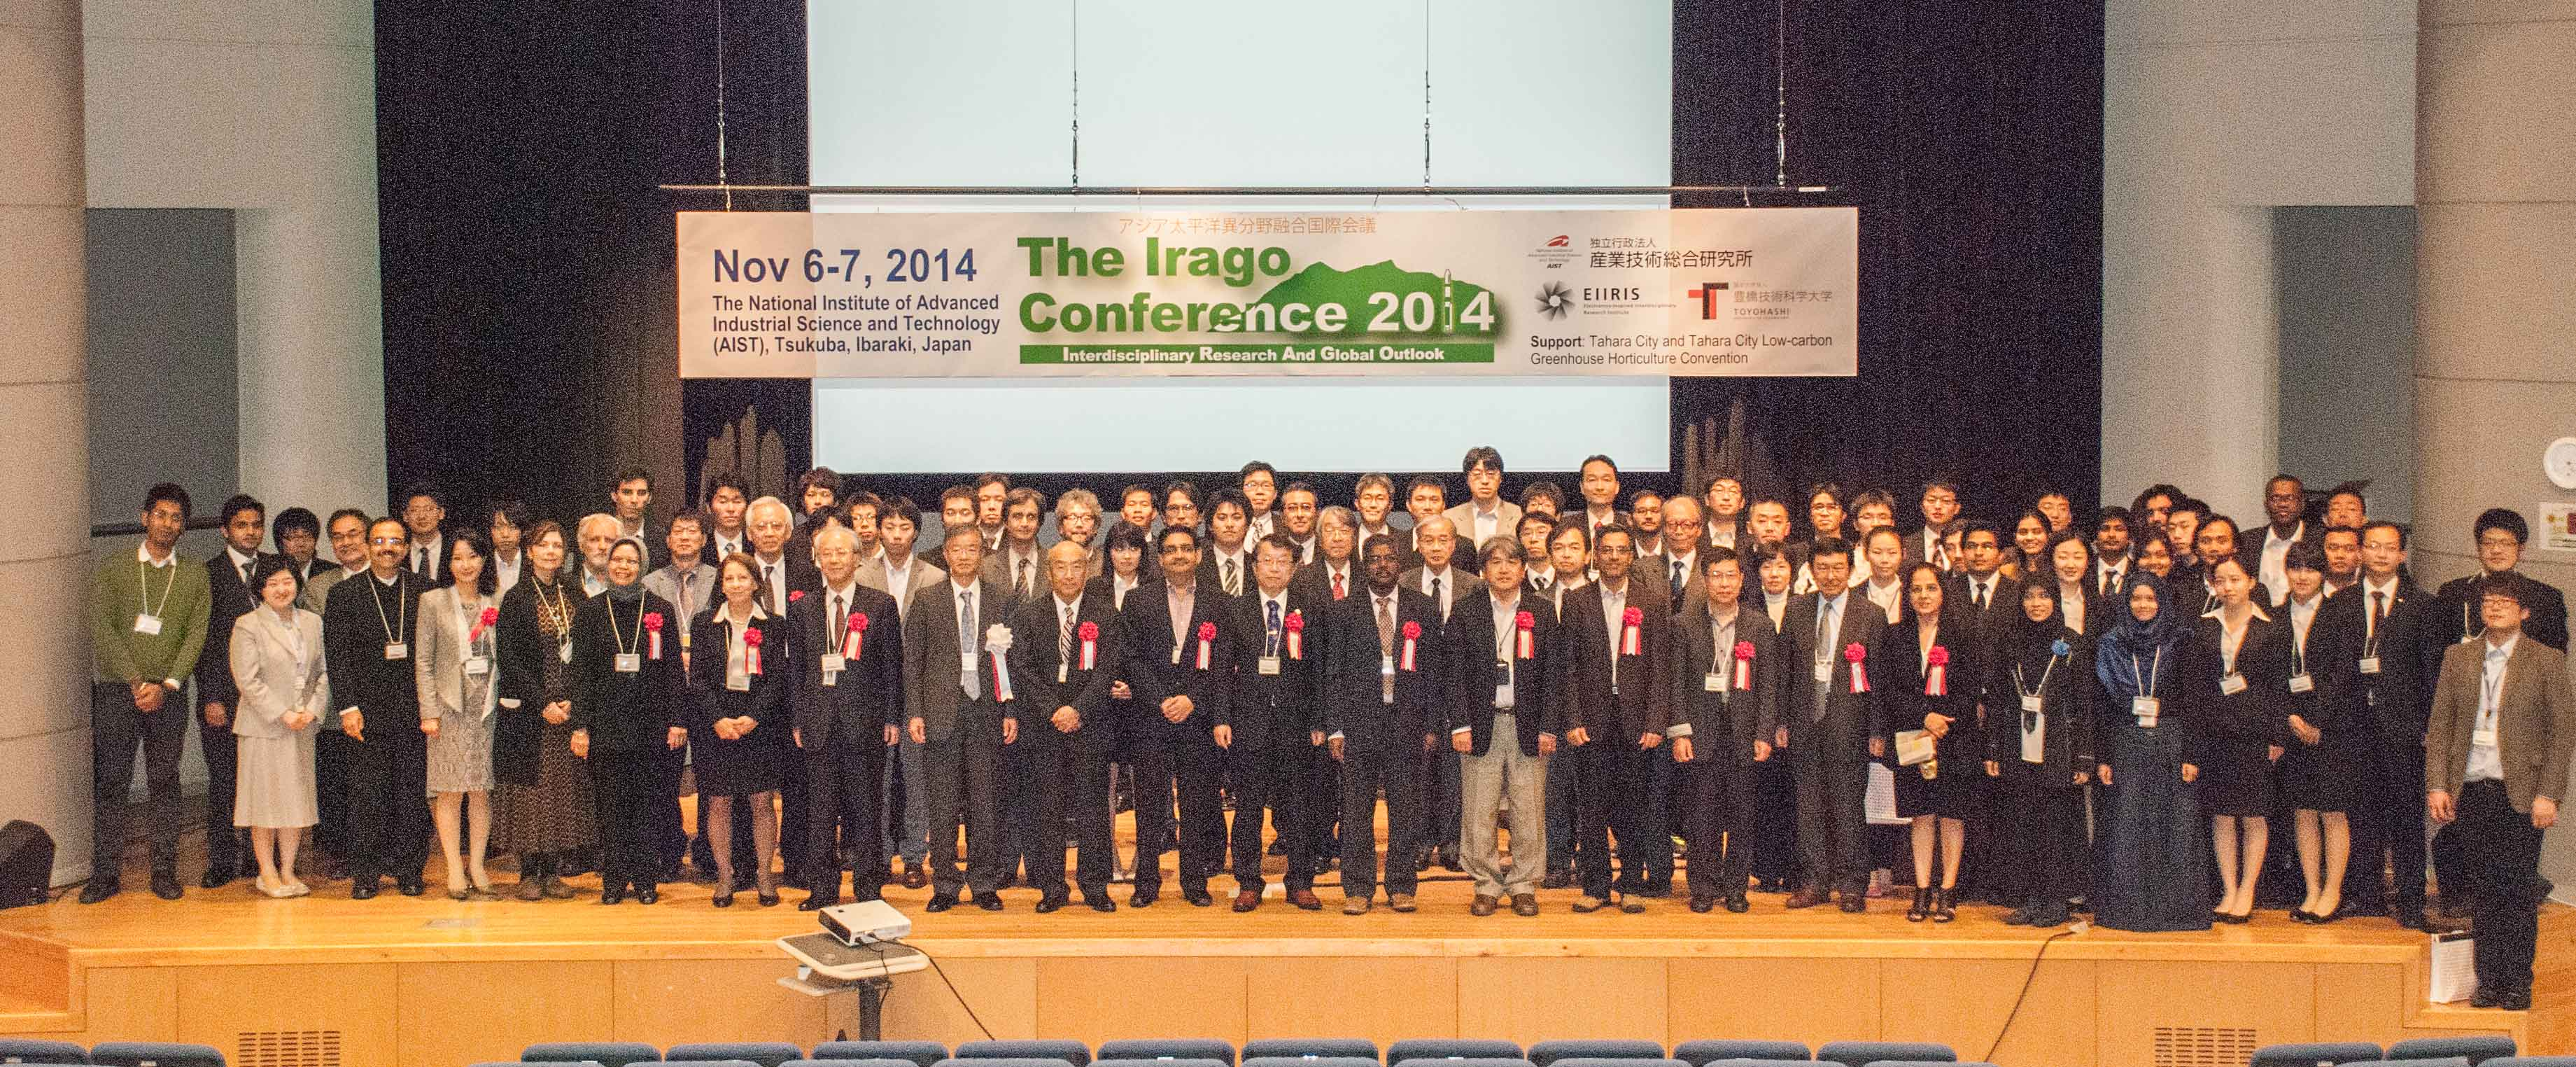 Conference Photo 2014